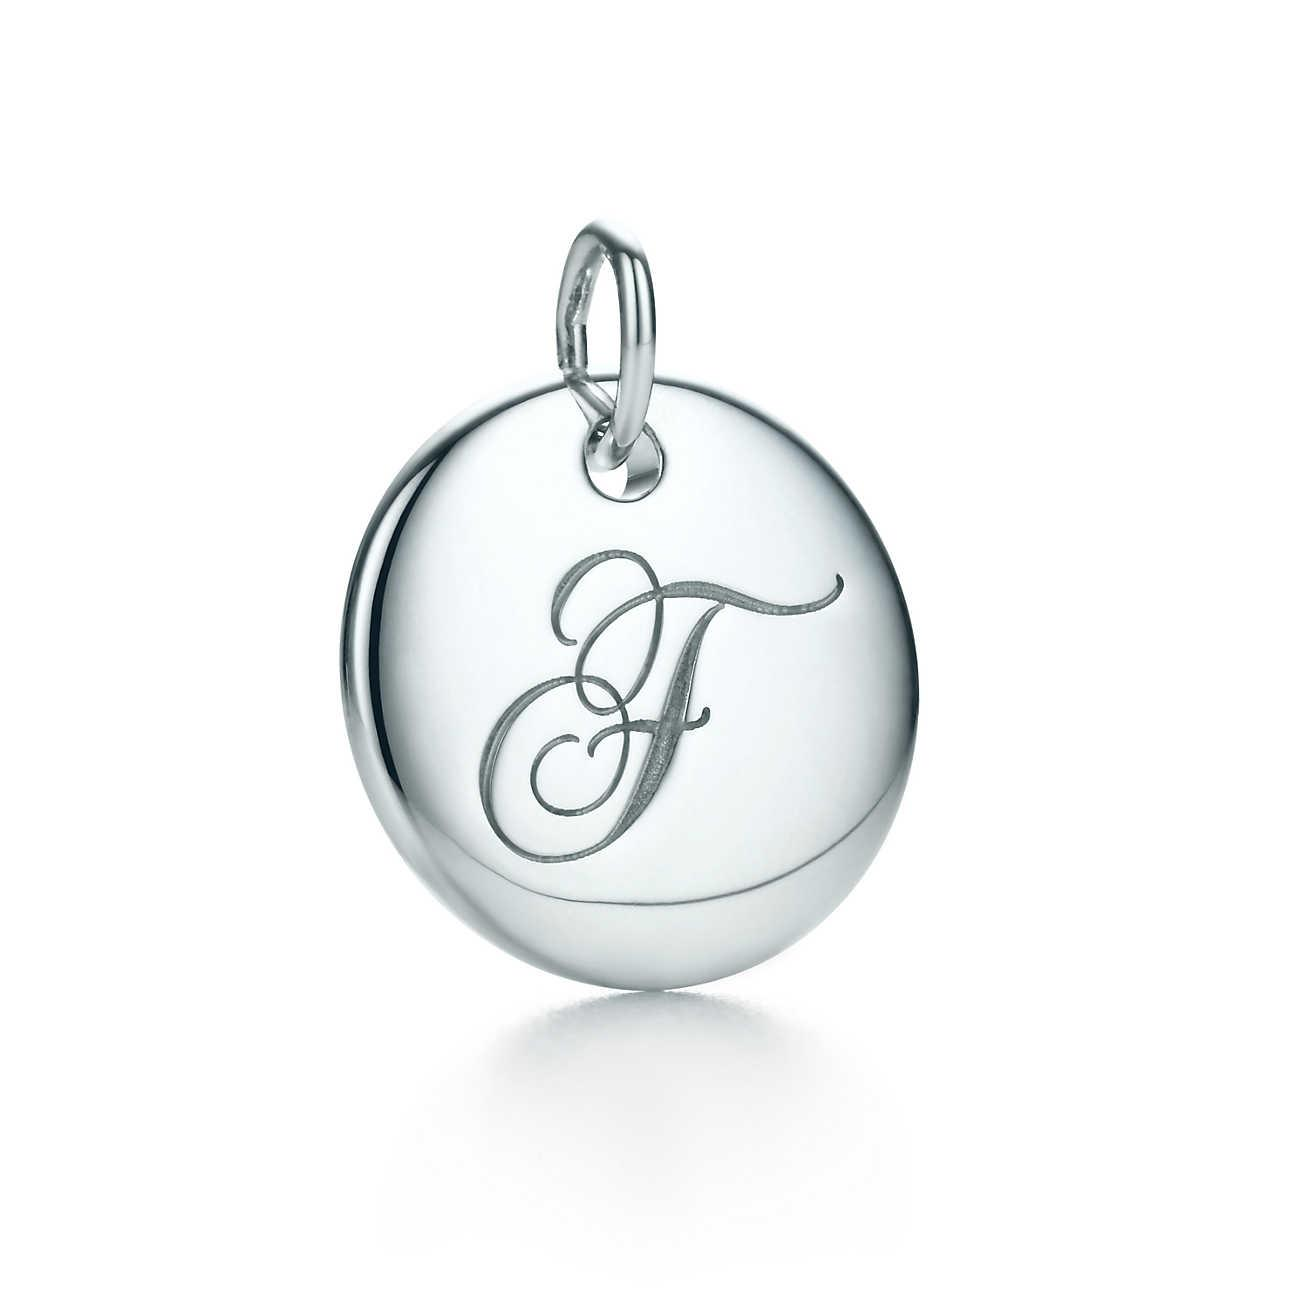 Tiffany Charms alphabet charm in sterling silver Letters A-Z available - Size U Tiffany & Co. lJIdfi